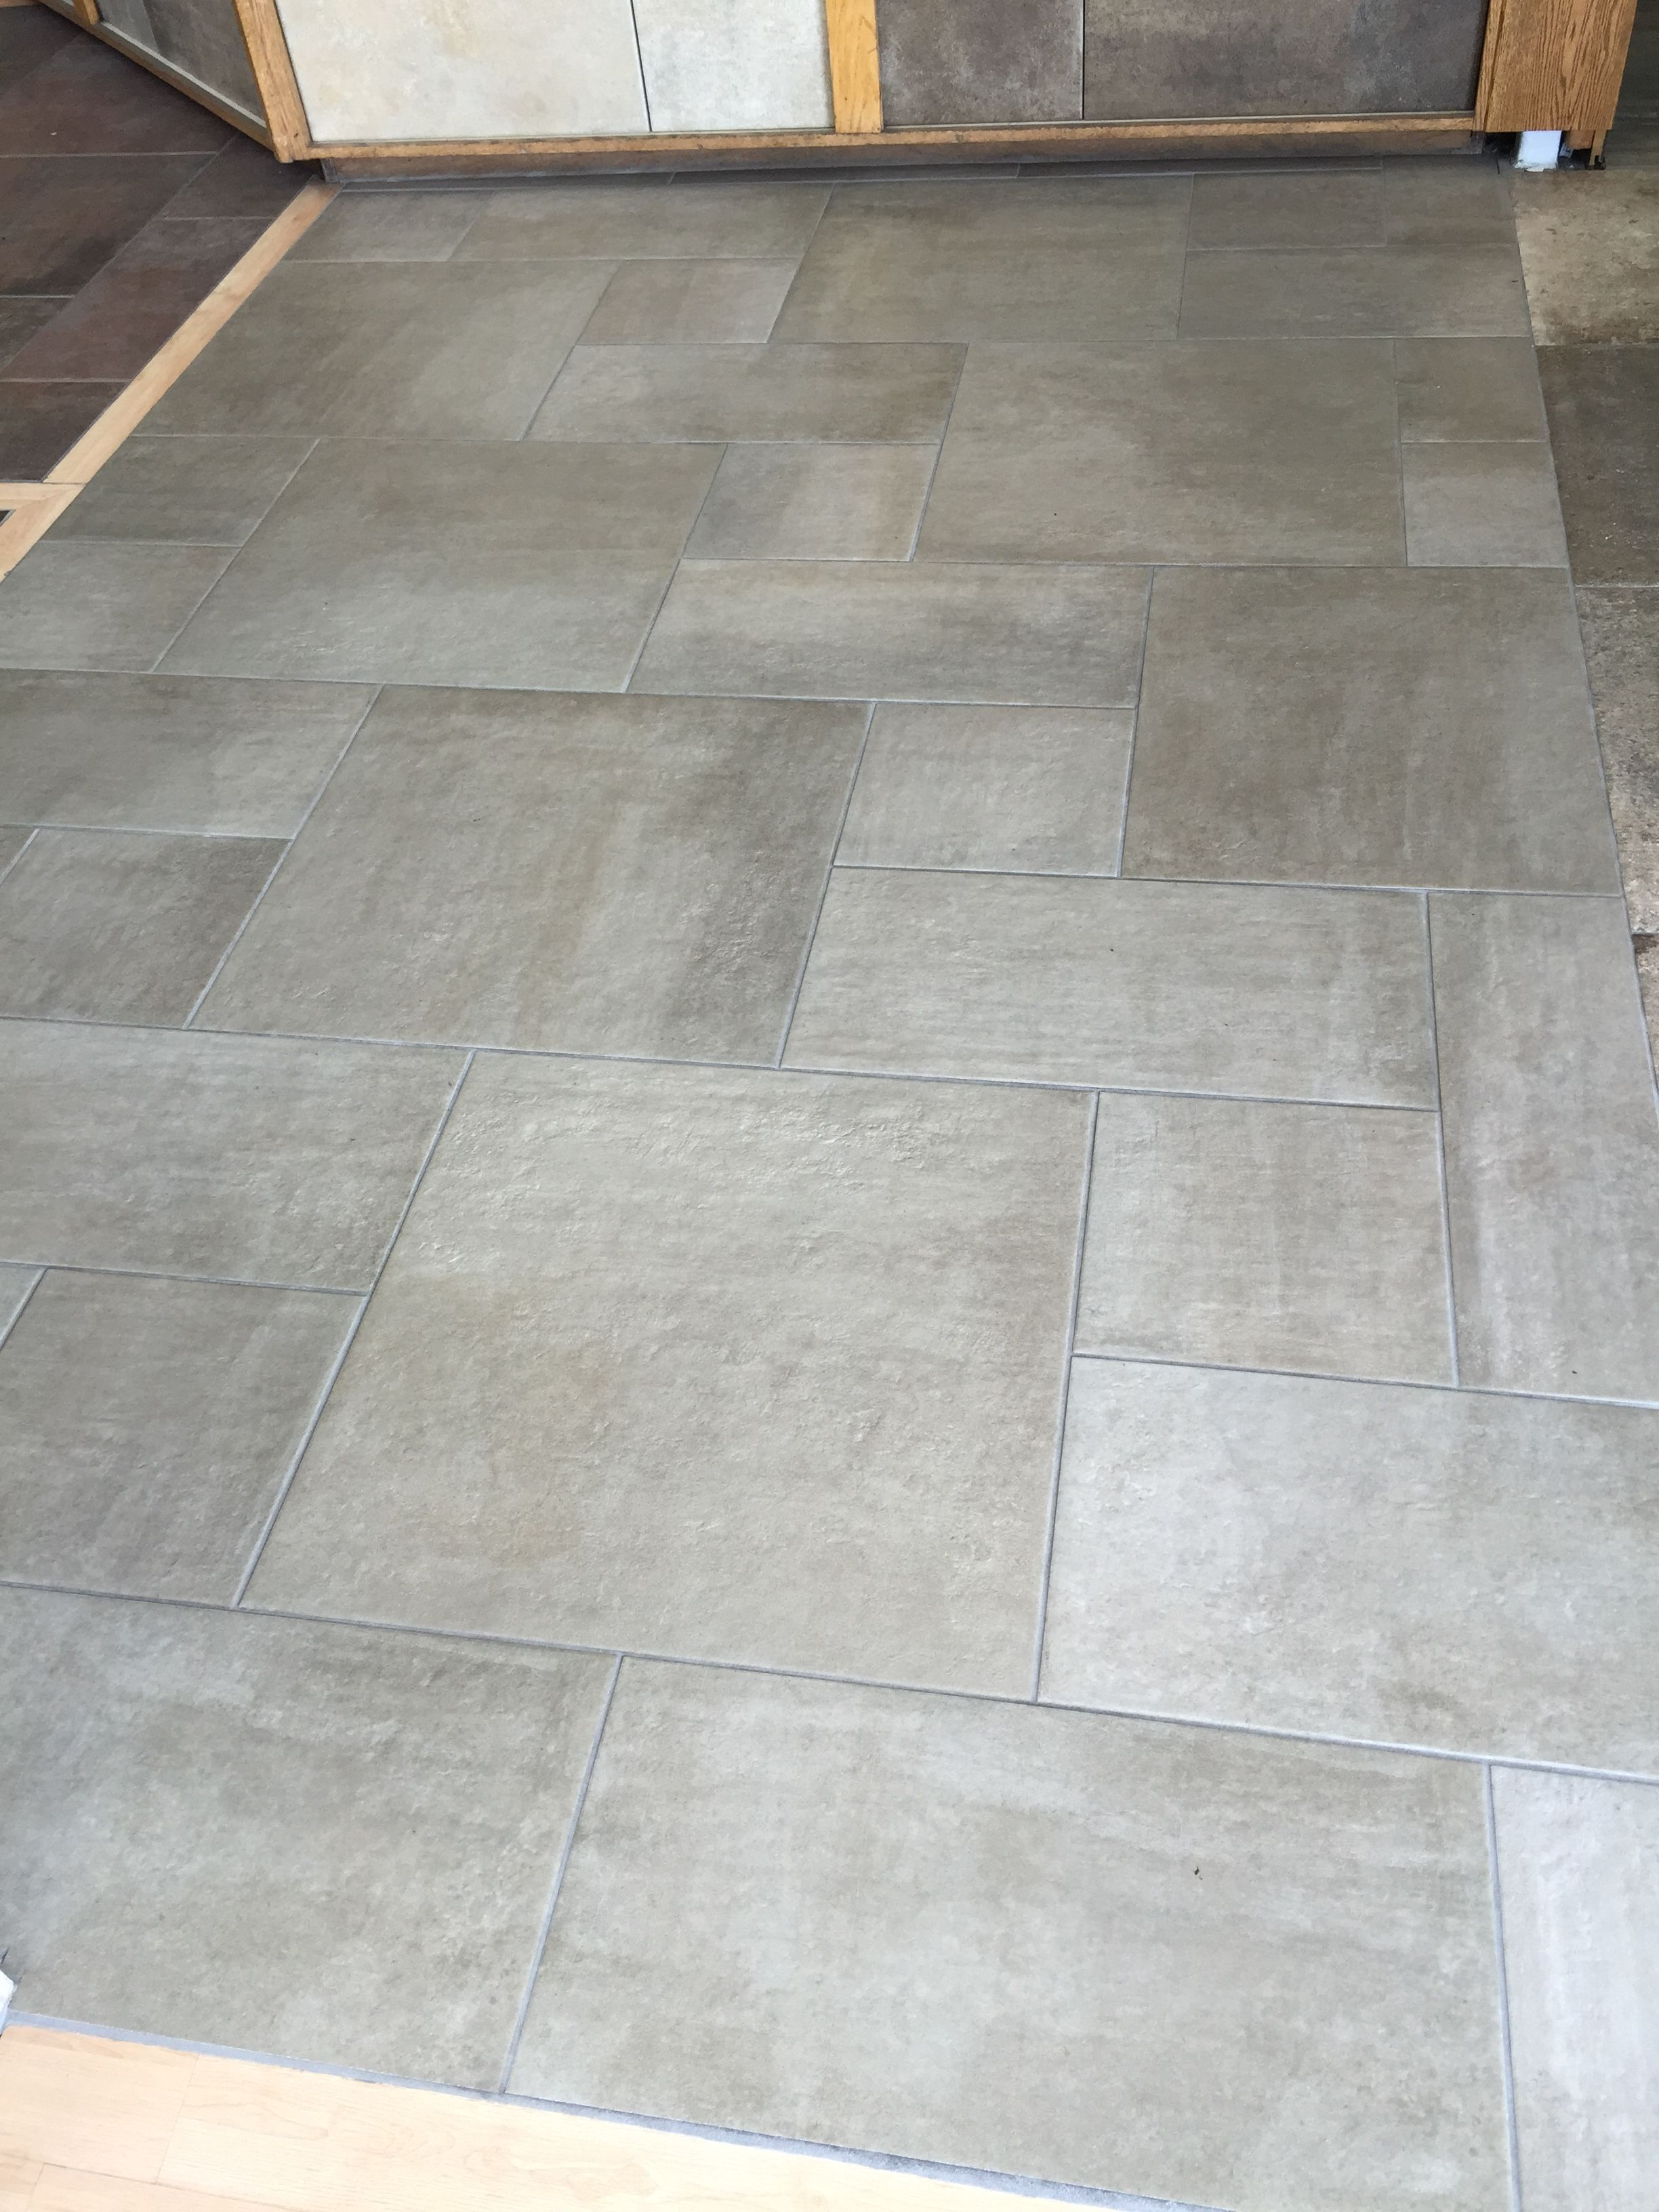 Flyzone Arguilla Tile In A 3 Size Pattern 12x12 24x24 12x24 The Tile Shop Patio Blocks Paver Patio Patio Pavers Design